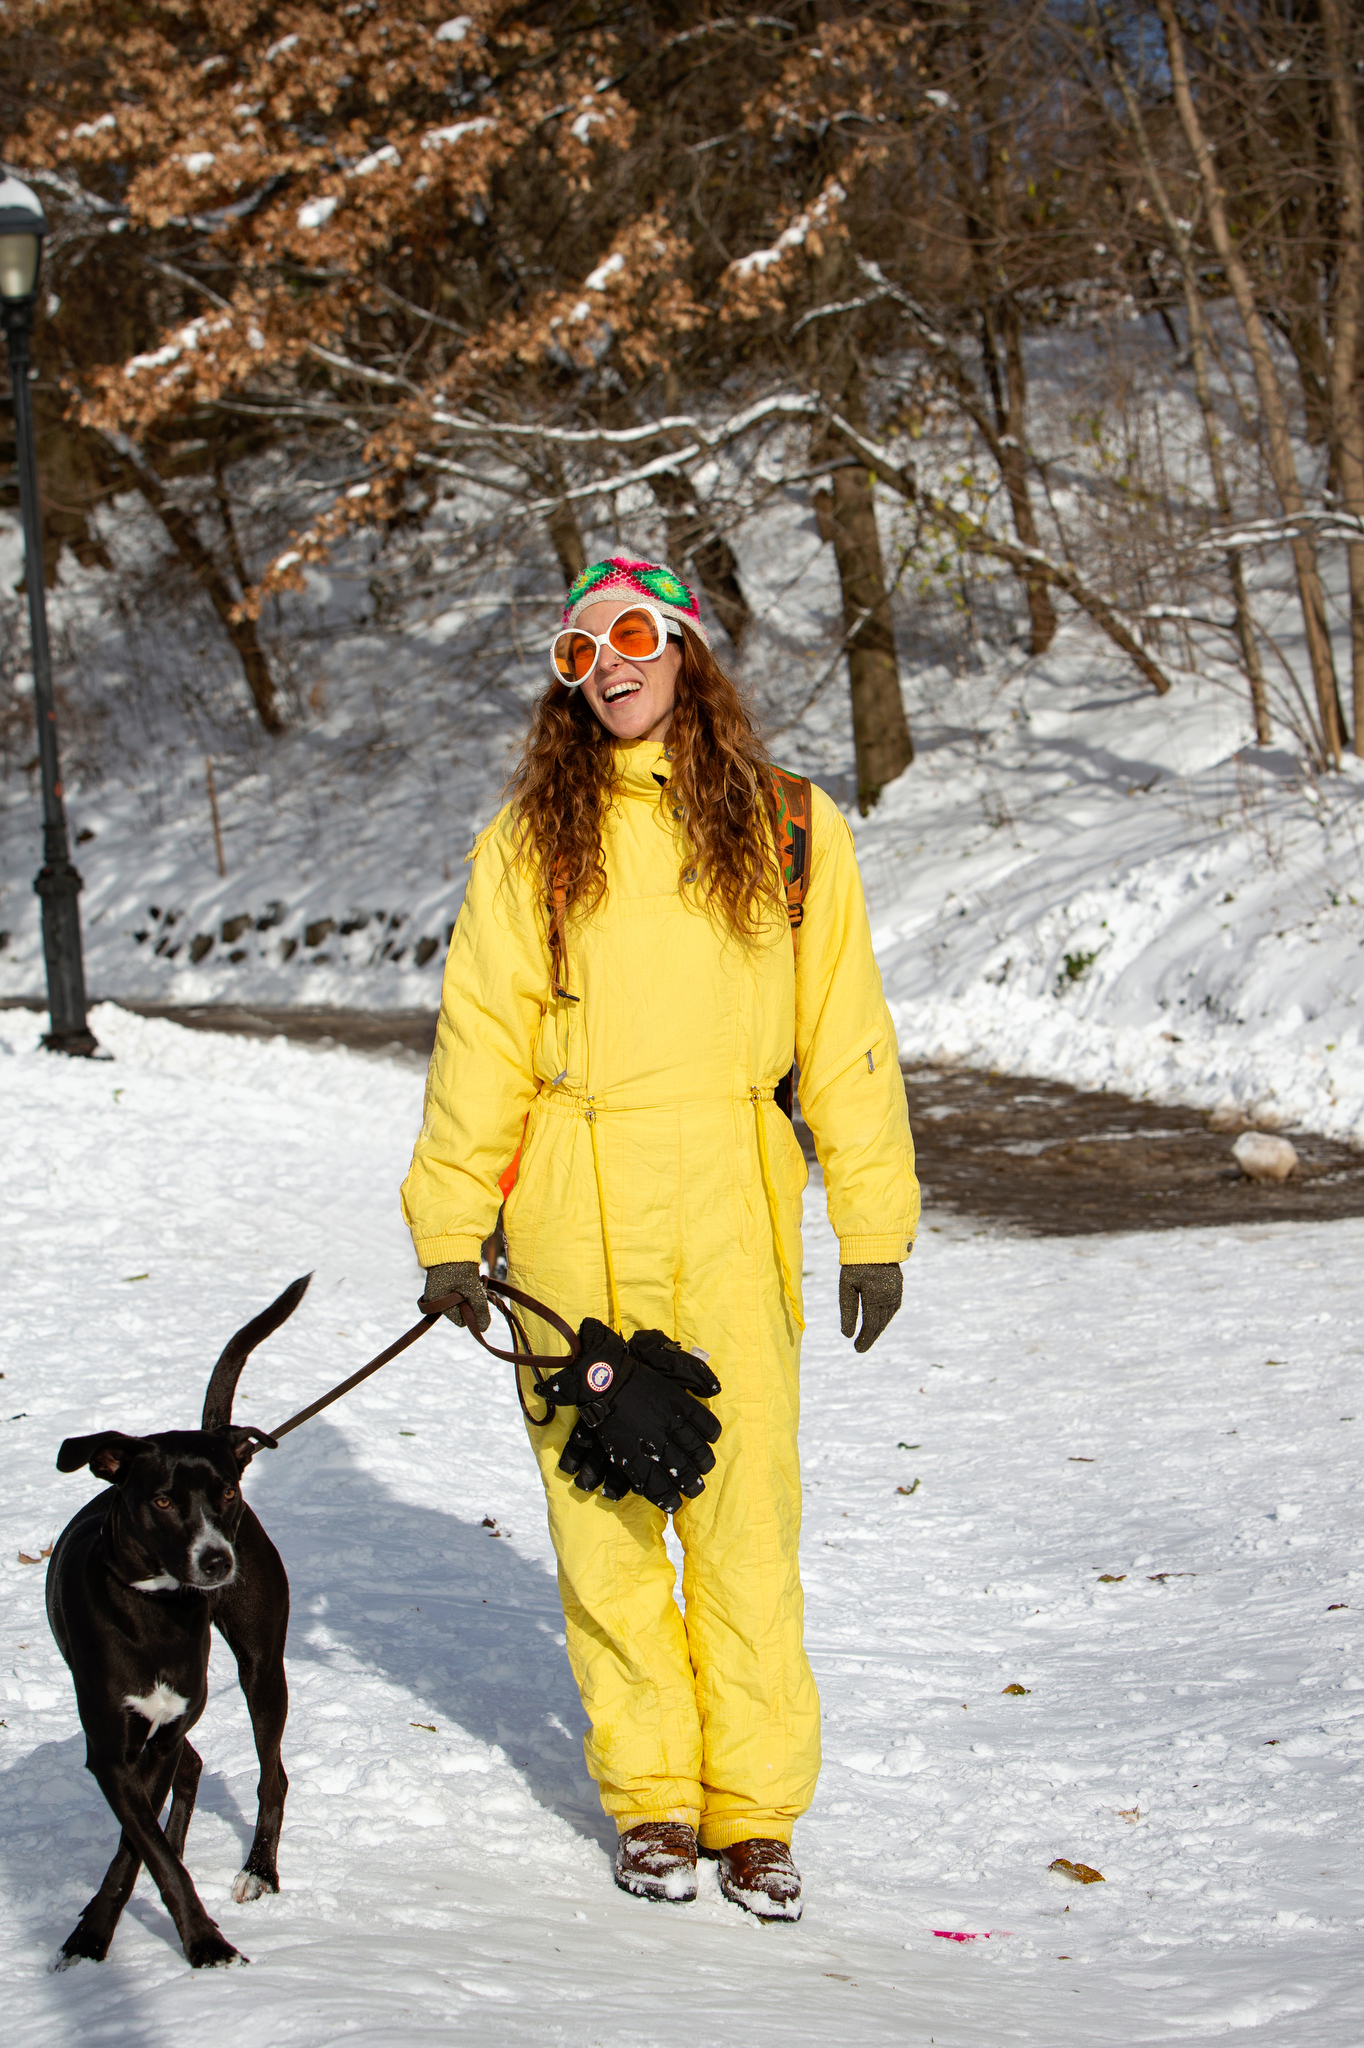 Street style in Prospect Park after the blizzard in New York City.